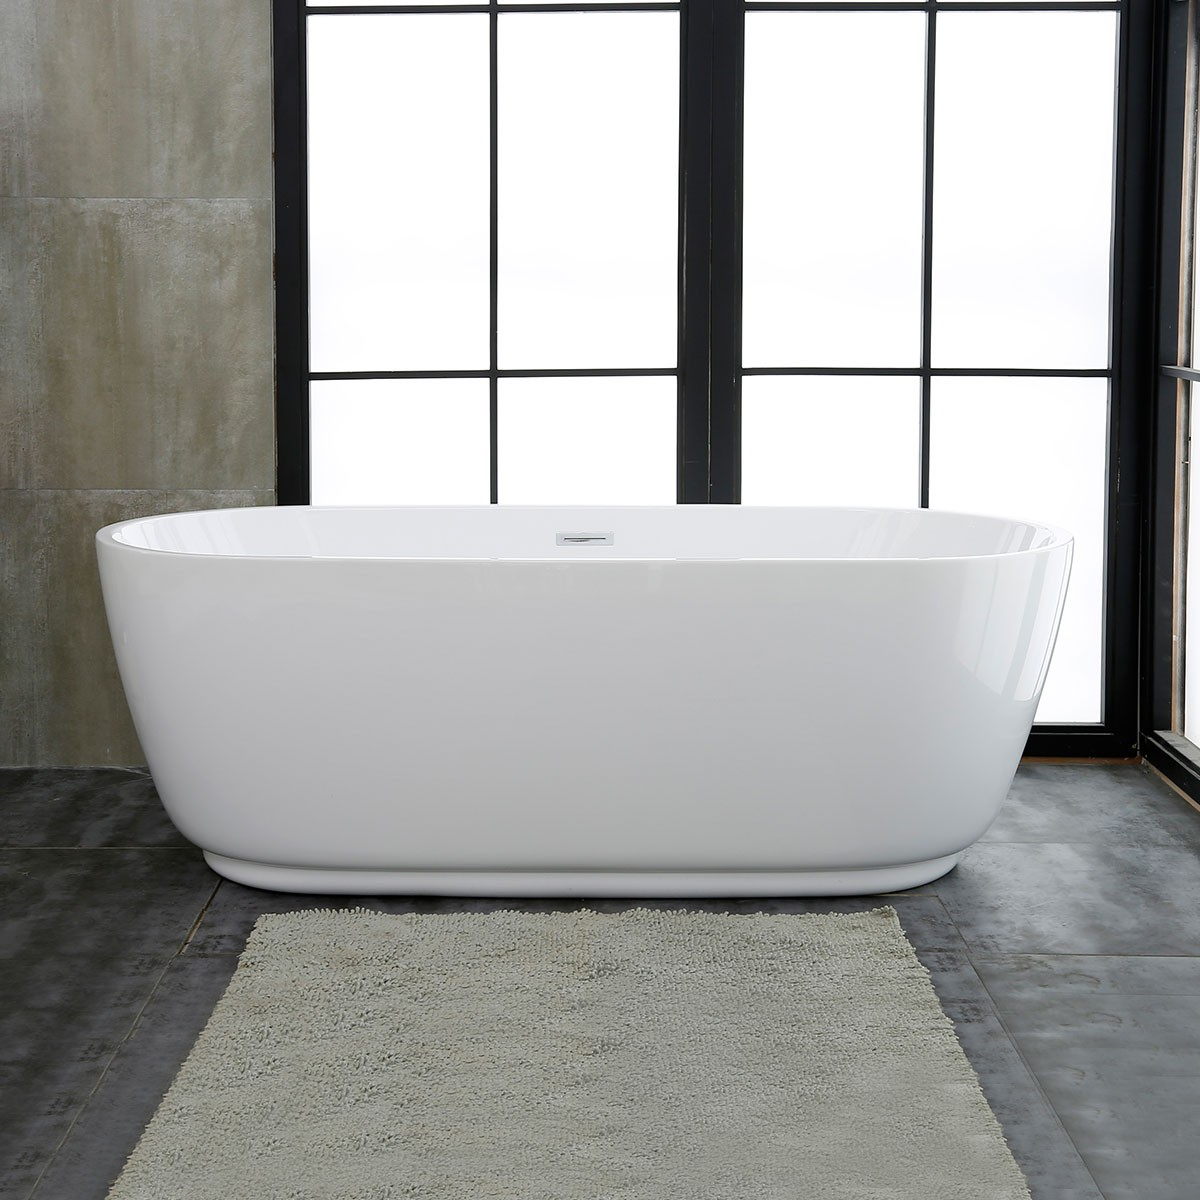 59 In Freestanding Bathtub - Acrylic Pure White (DK-PW-5957)